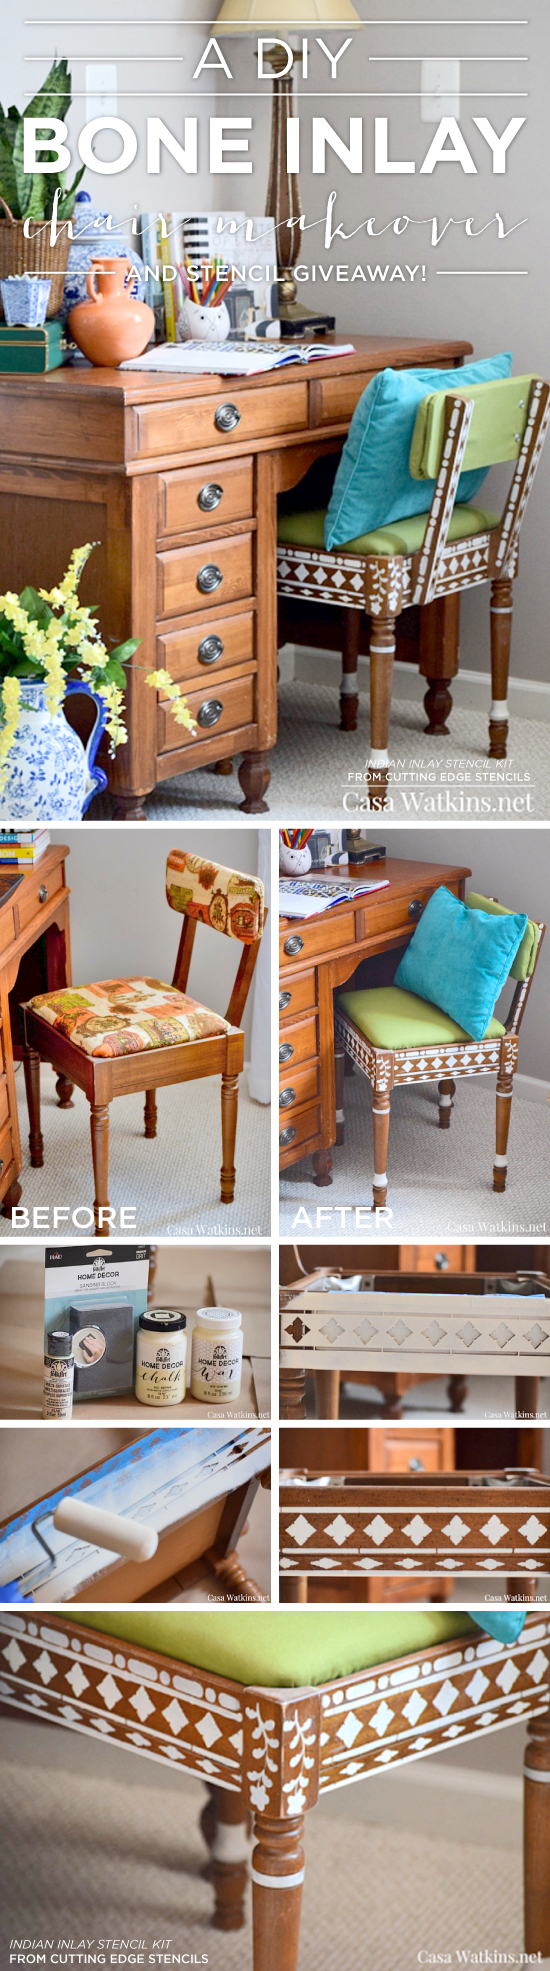 Cutting Edge Stencils shares how to easily paint furniture using the Indian Inlay Stencil kit for a bone inlay look. http://www.cuttingedgestencils.com/indian-inlay-stencil-furniture.html